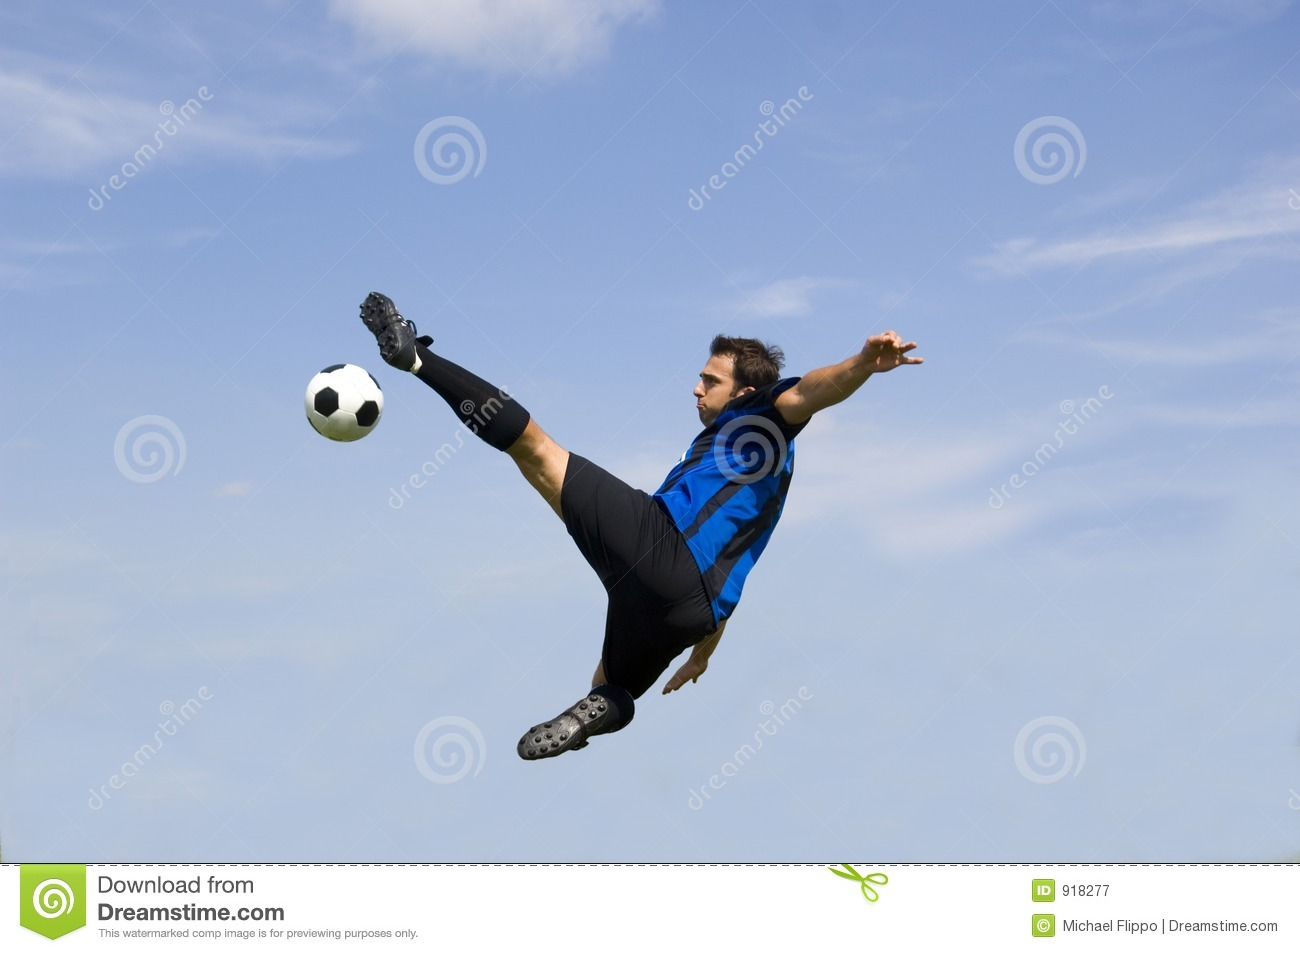 Famous soccer players in action making a goal